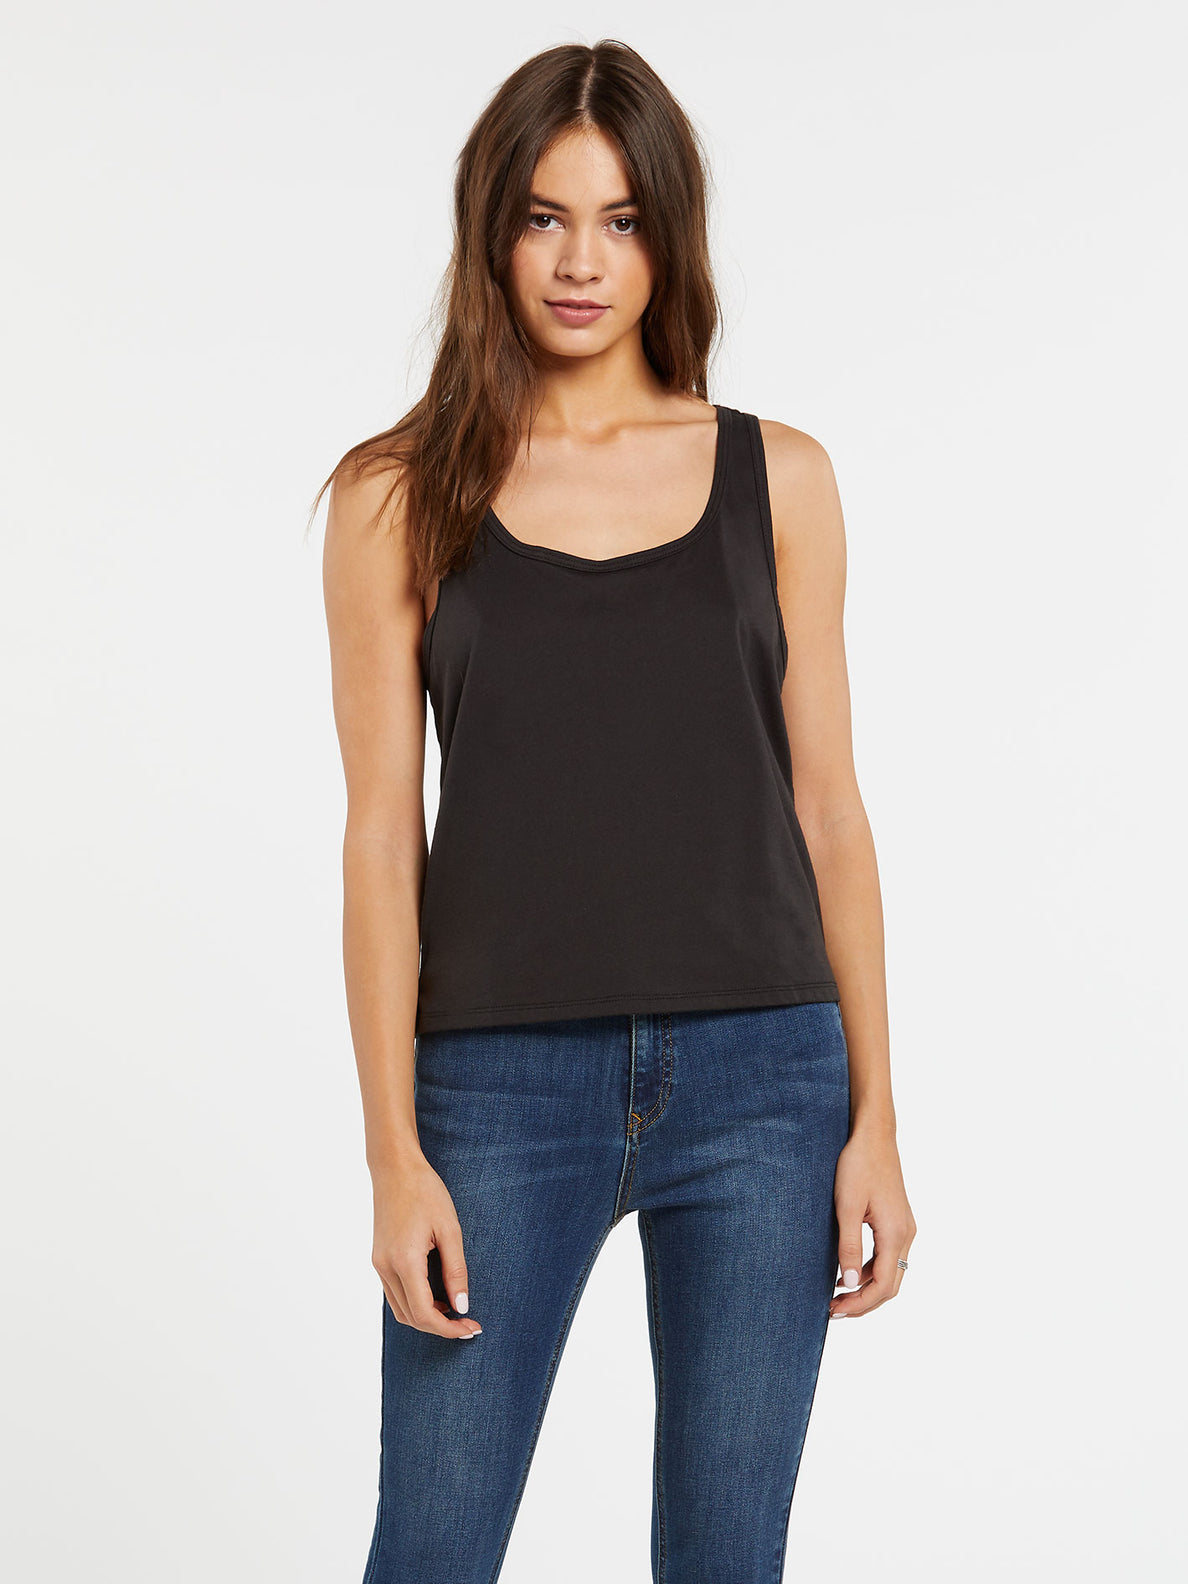 Volcom Womens Good to Be You Allover Cami Tank